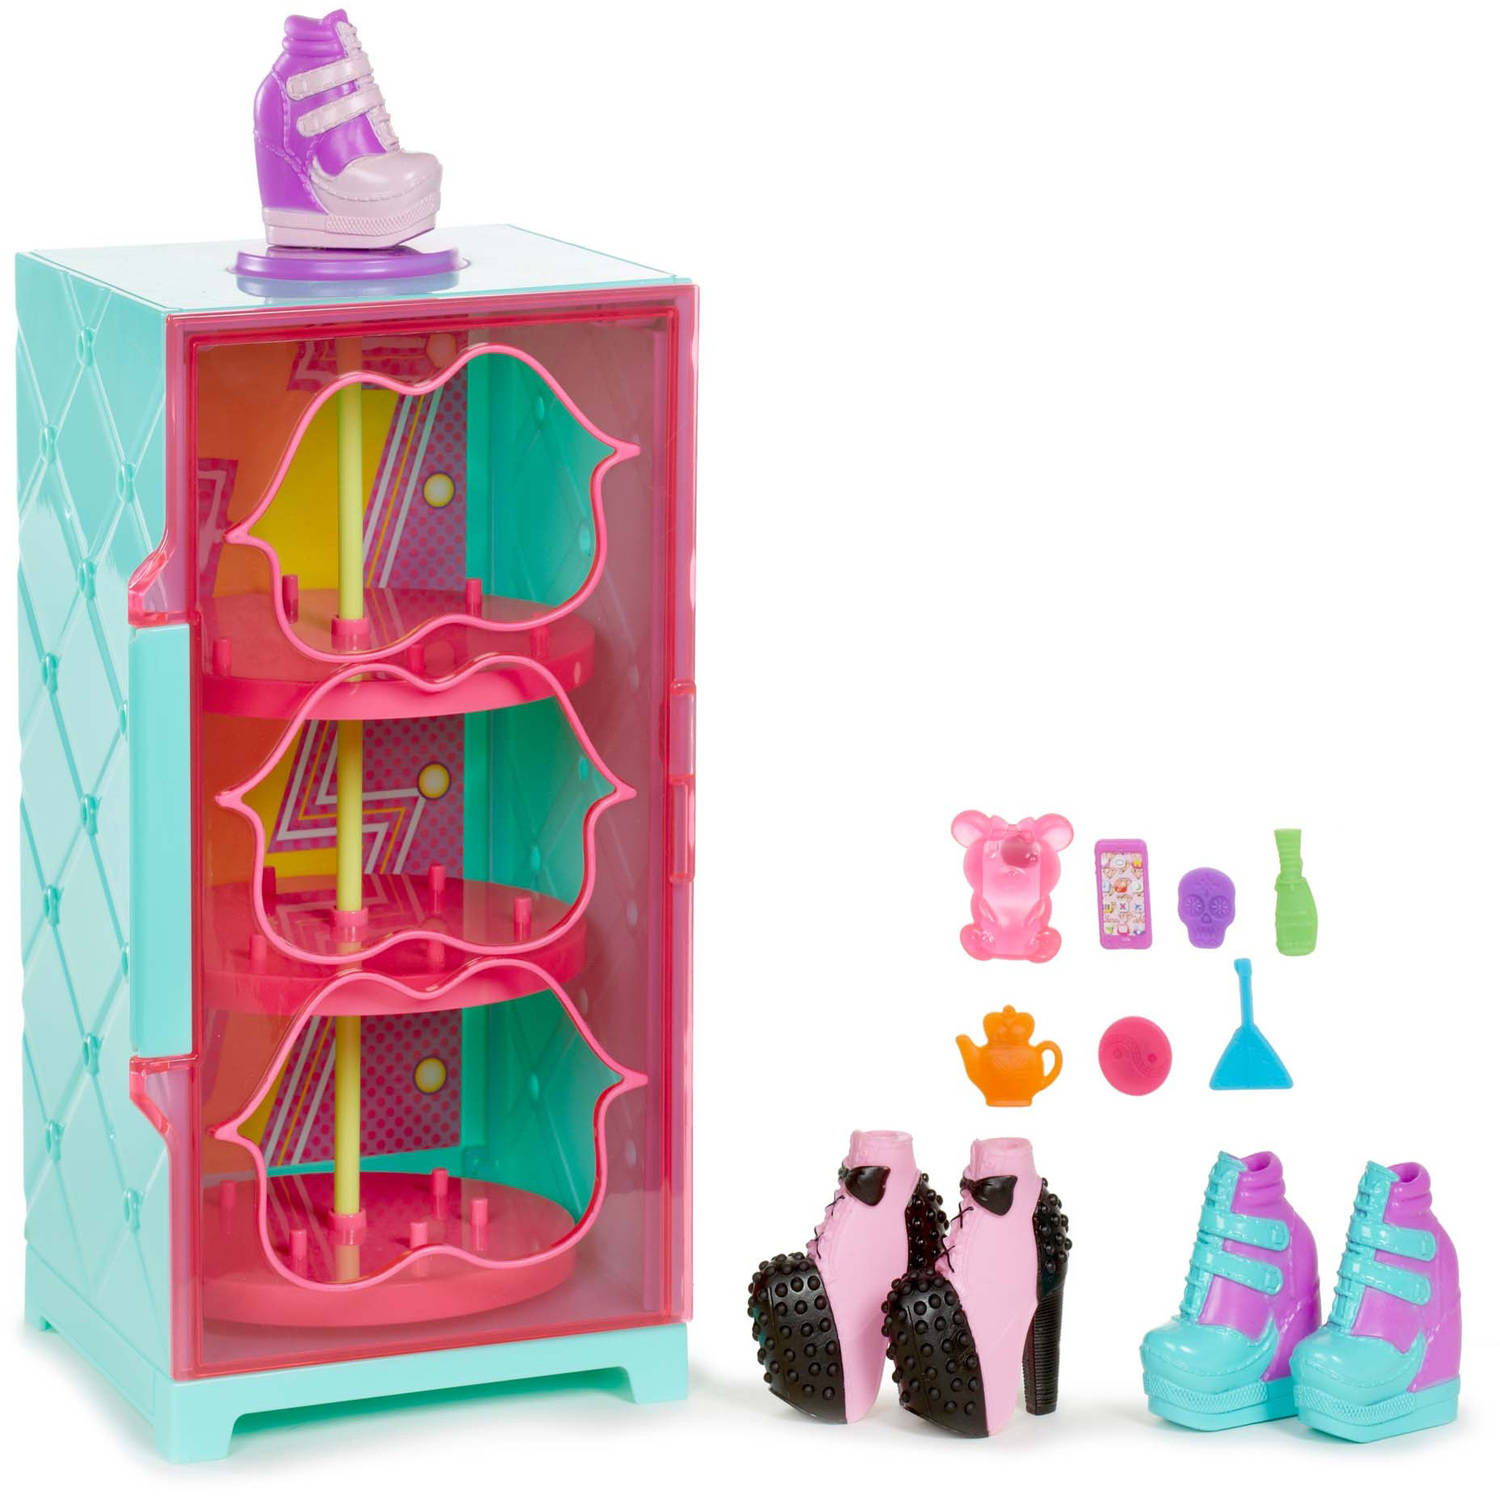 Bratz #ShoefieSnaps Showcase by MGA Entertainment